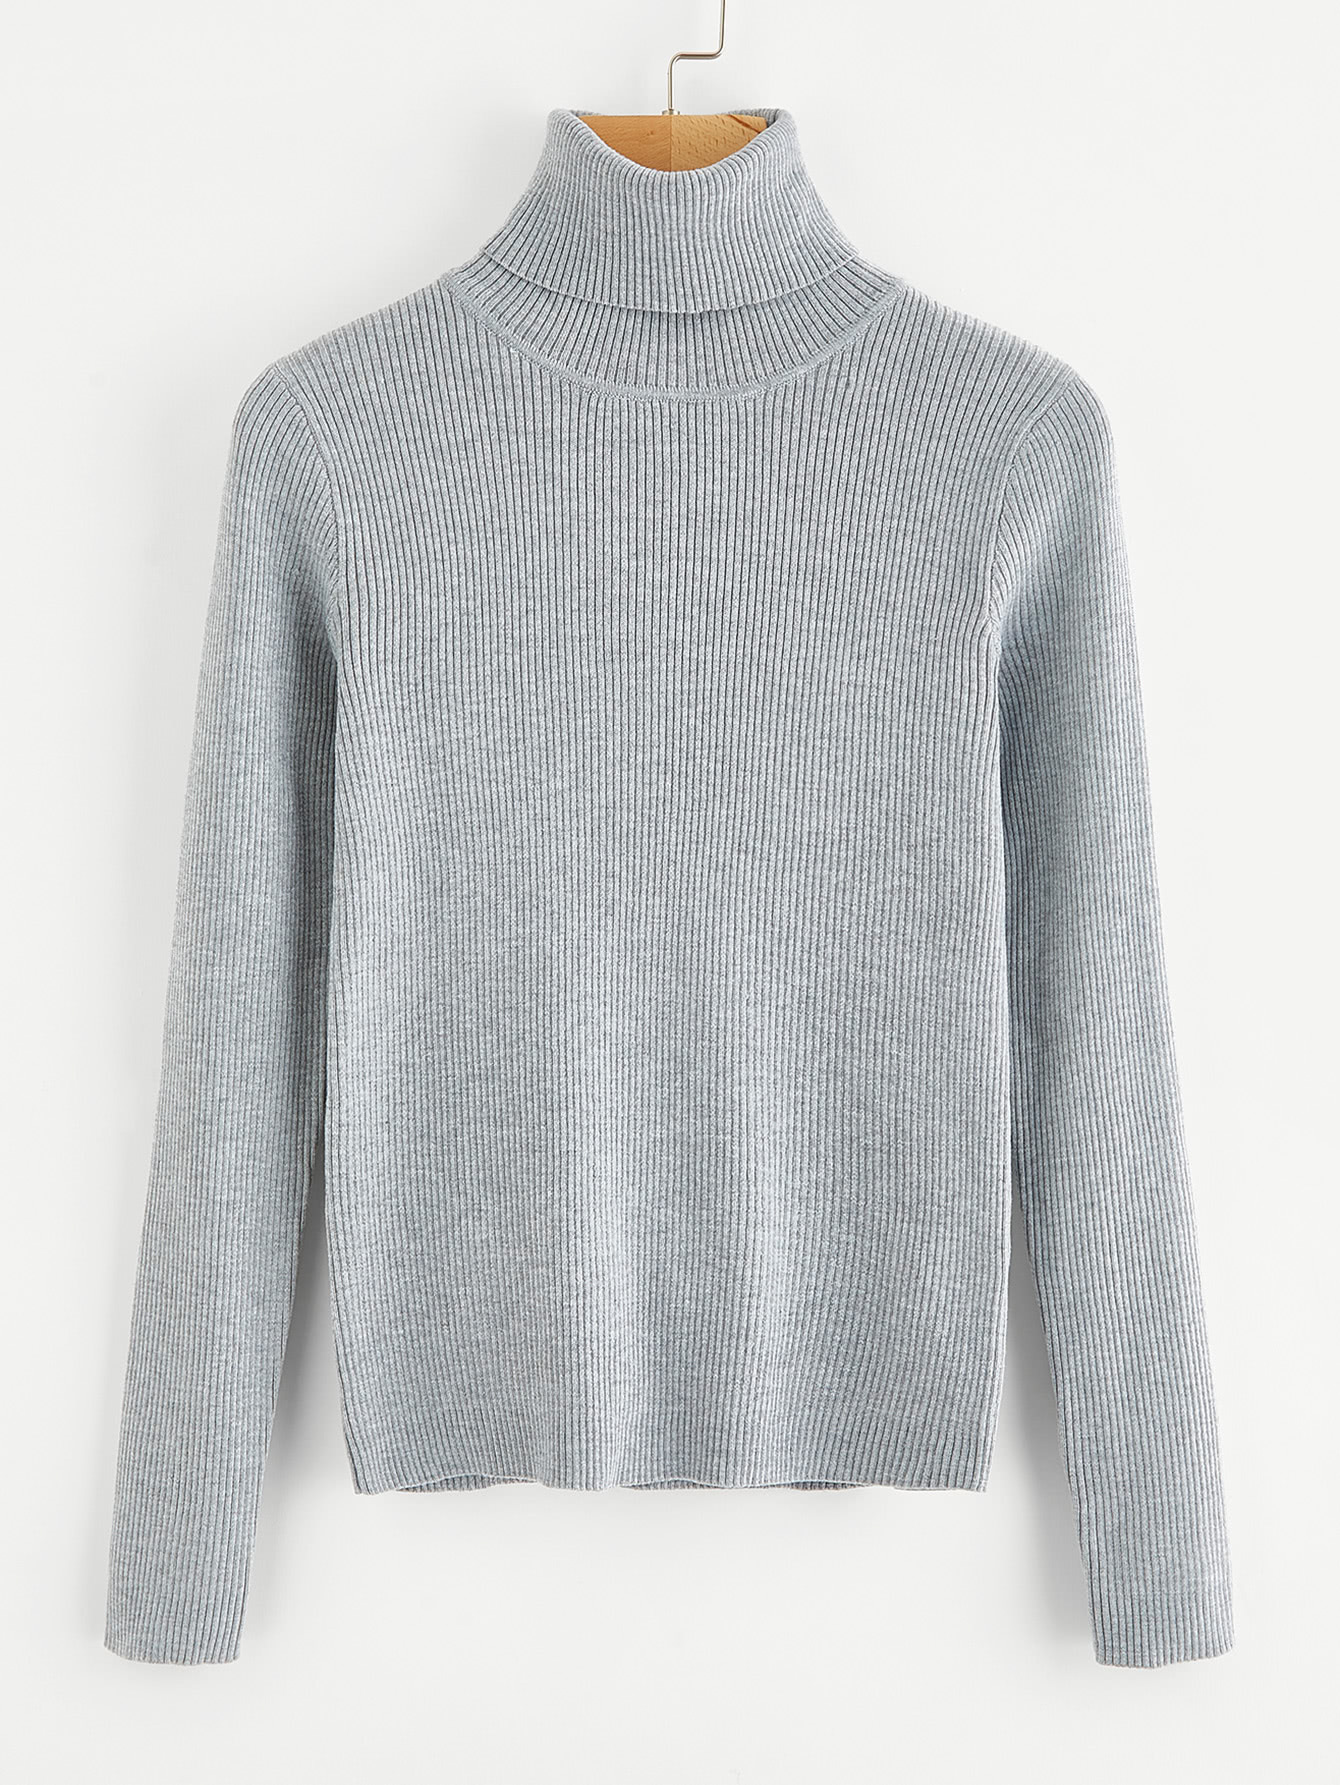 Solid Ribbed Knit Roll Neck Jumper sweater170821457